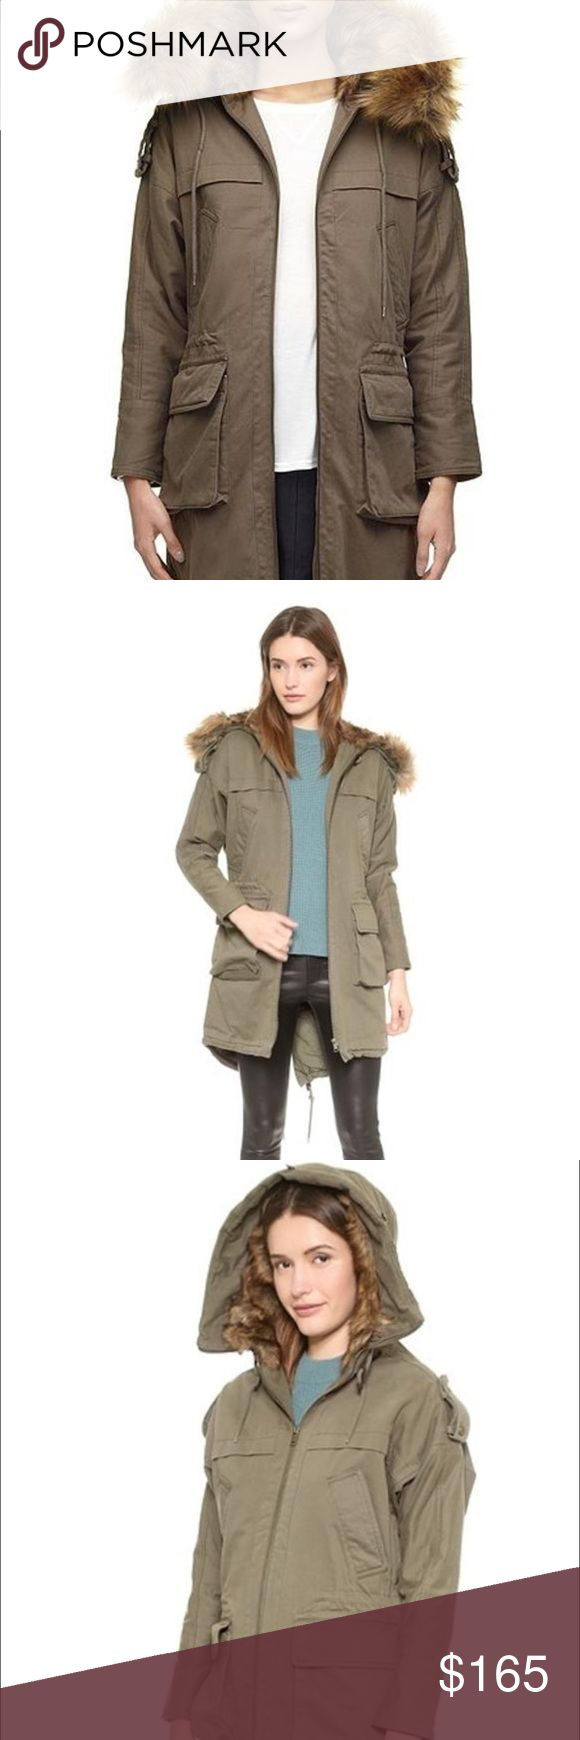 """WHISTLES Donnie Faux Fur Hooded Olive Parka Coat """"This fiber-filled Whistles jacket has a faux-fur-trimmed hood for a cozy update to the utilitarian look. Drawstrings cinch the waist and hem, and 4 pockets detail the front.     -Long sleeves  -Quilted lining  -Fabric: Soft twill  -Shell: 82% cotton/18% lyocell  -Lining: 65% cotton/35% polyester  -Fill: 100% polyester  -Dry clean Whistles Jackets & Coats Utility Jackets"""